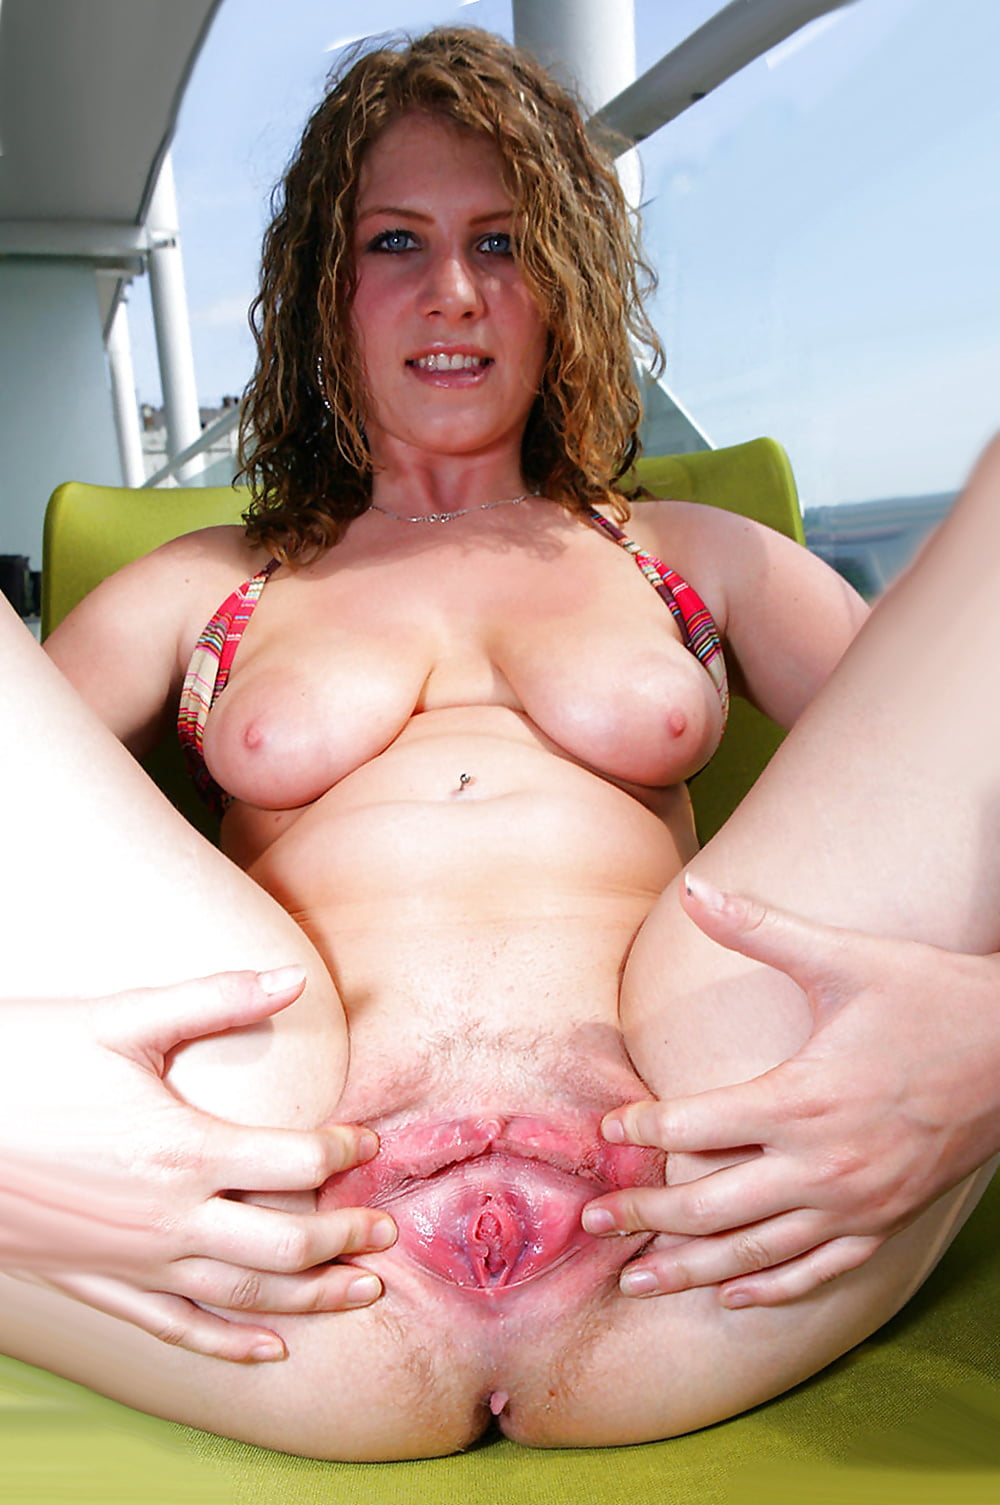 Fuck free daily mature pussy pics sex